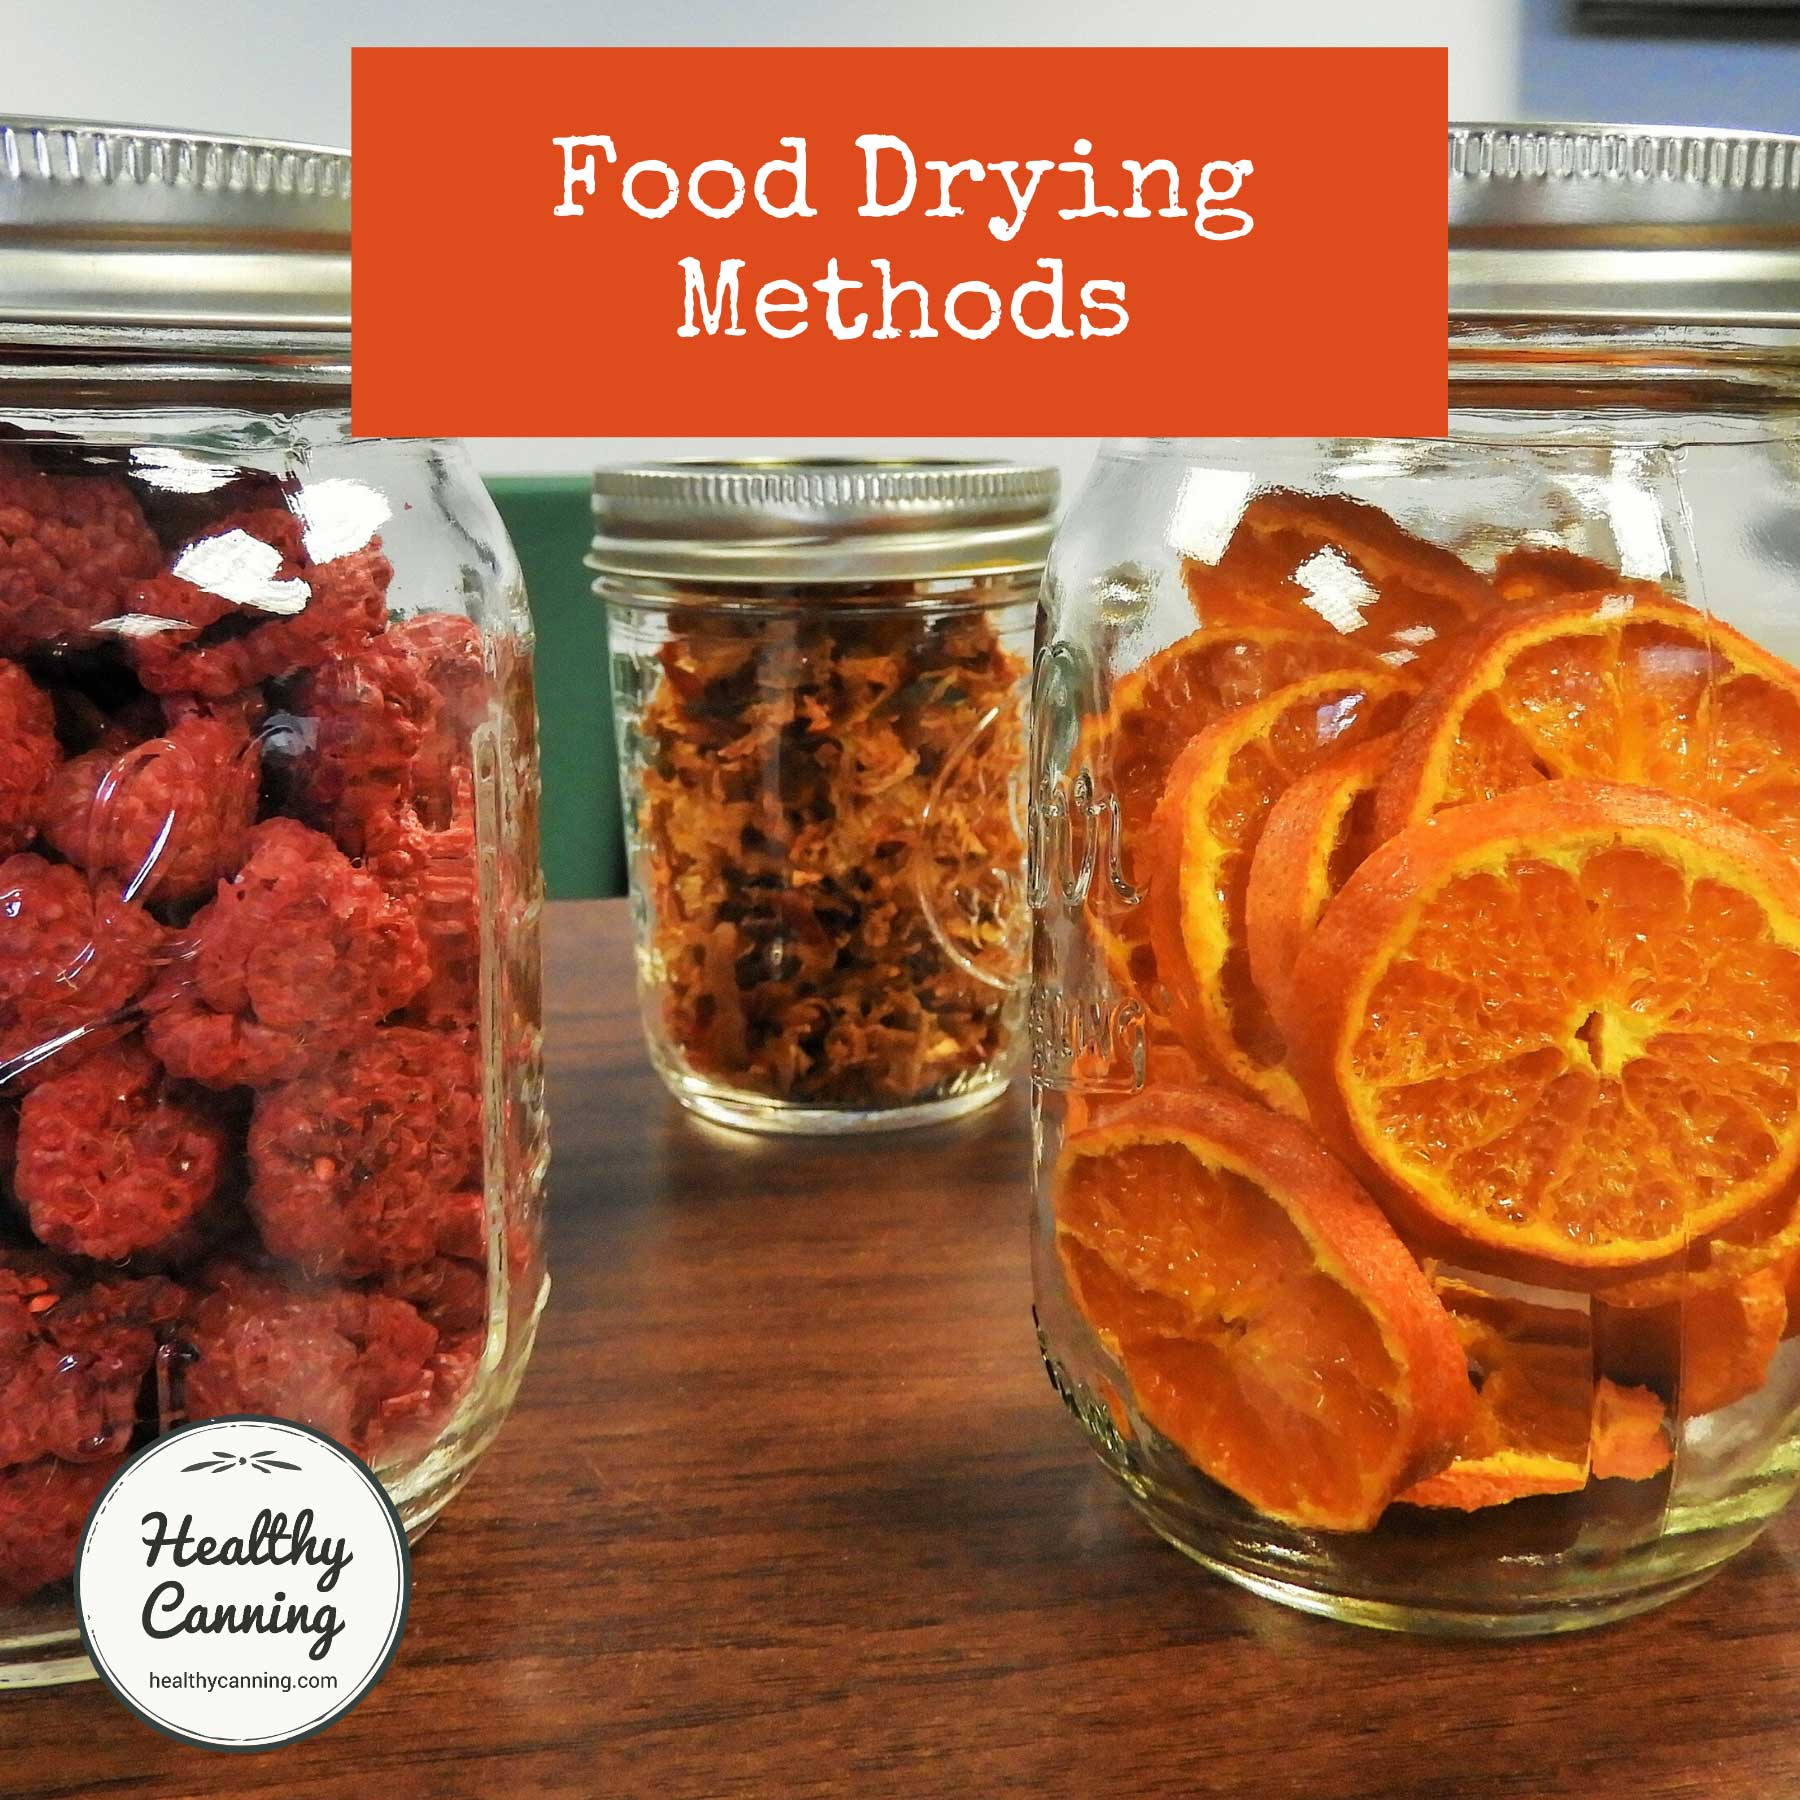 Food Drying Methods